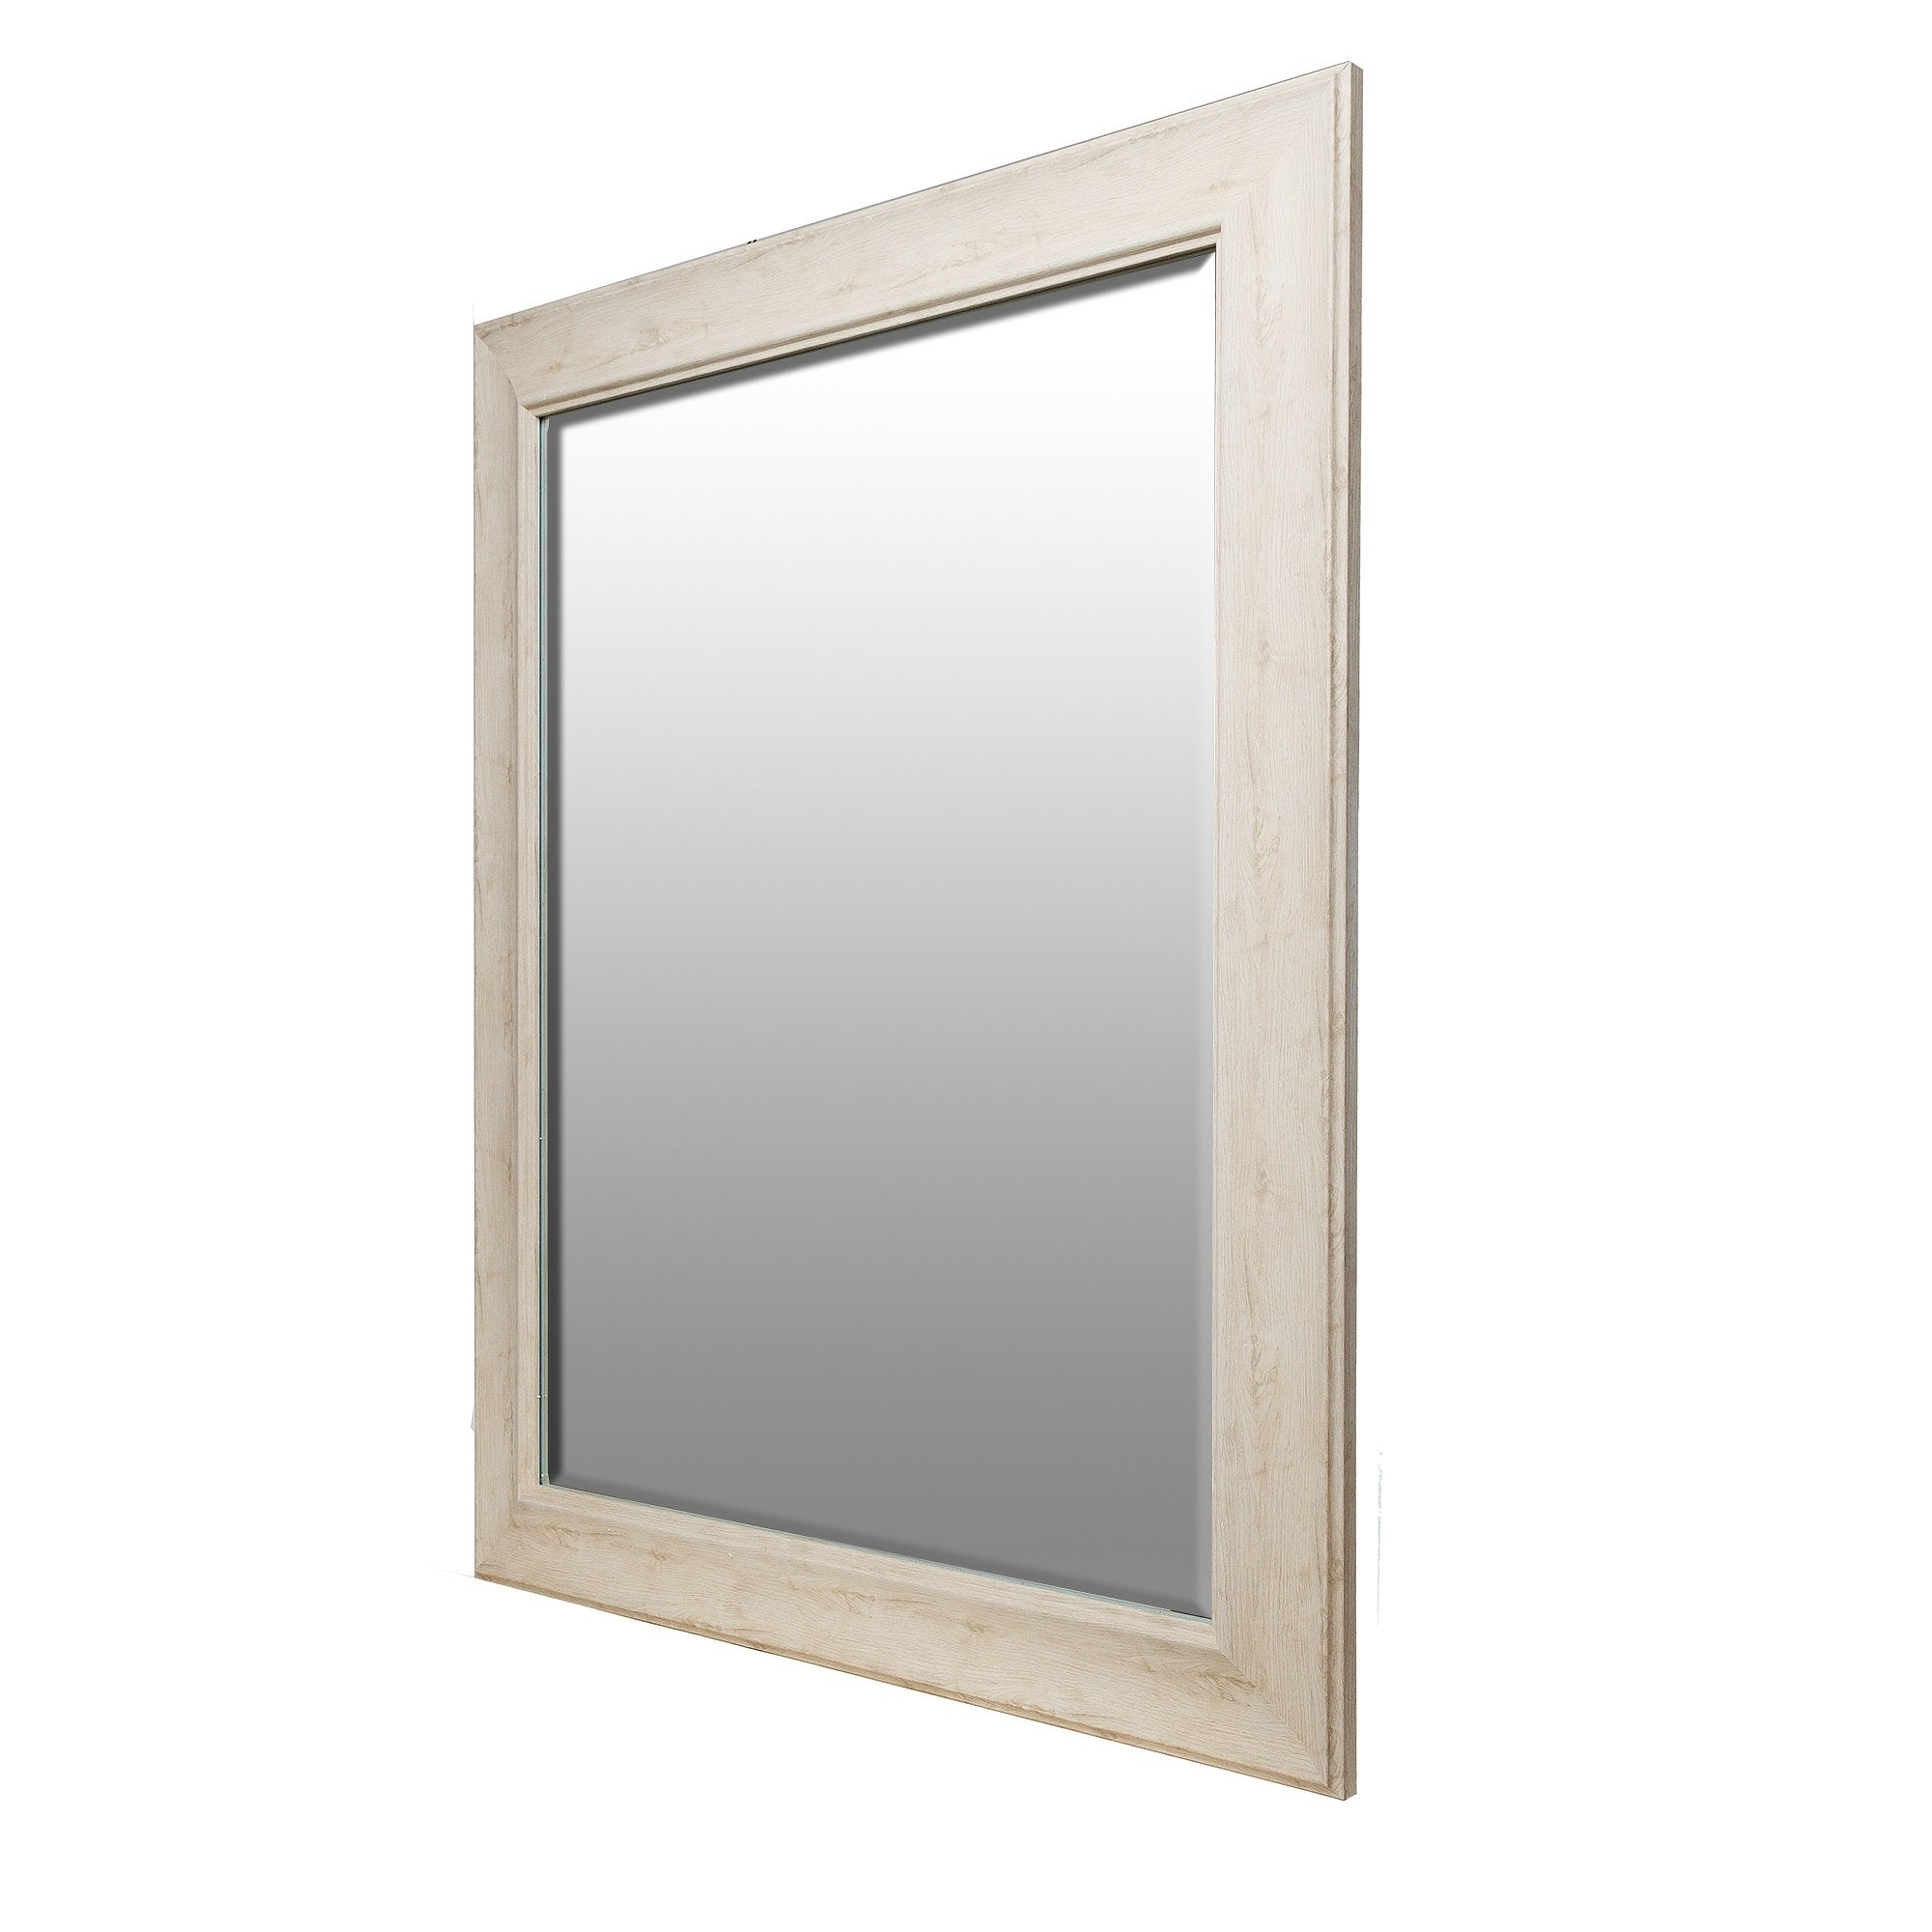 Well Known 22x28 Traditional Beveled Wall Mirror Throughout Traditional Beveled Wall Mirrors (View 13 of 20)